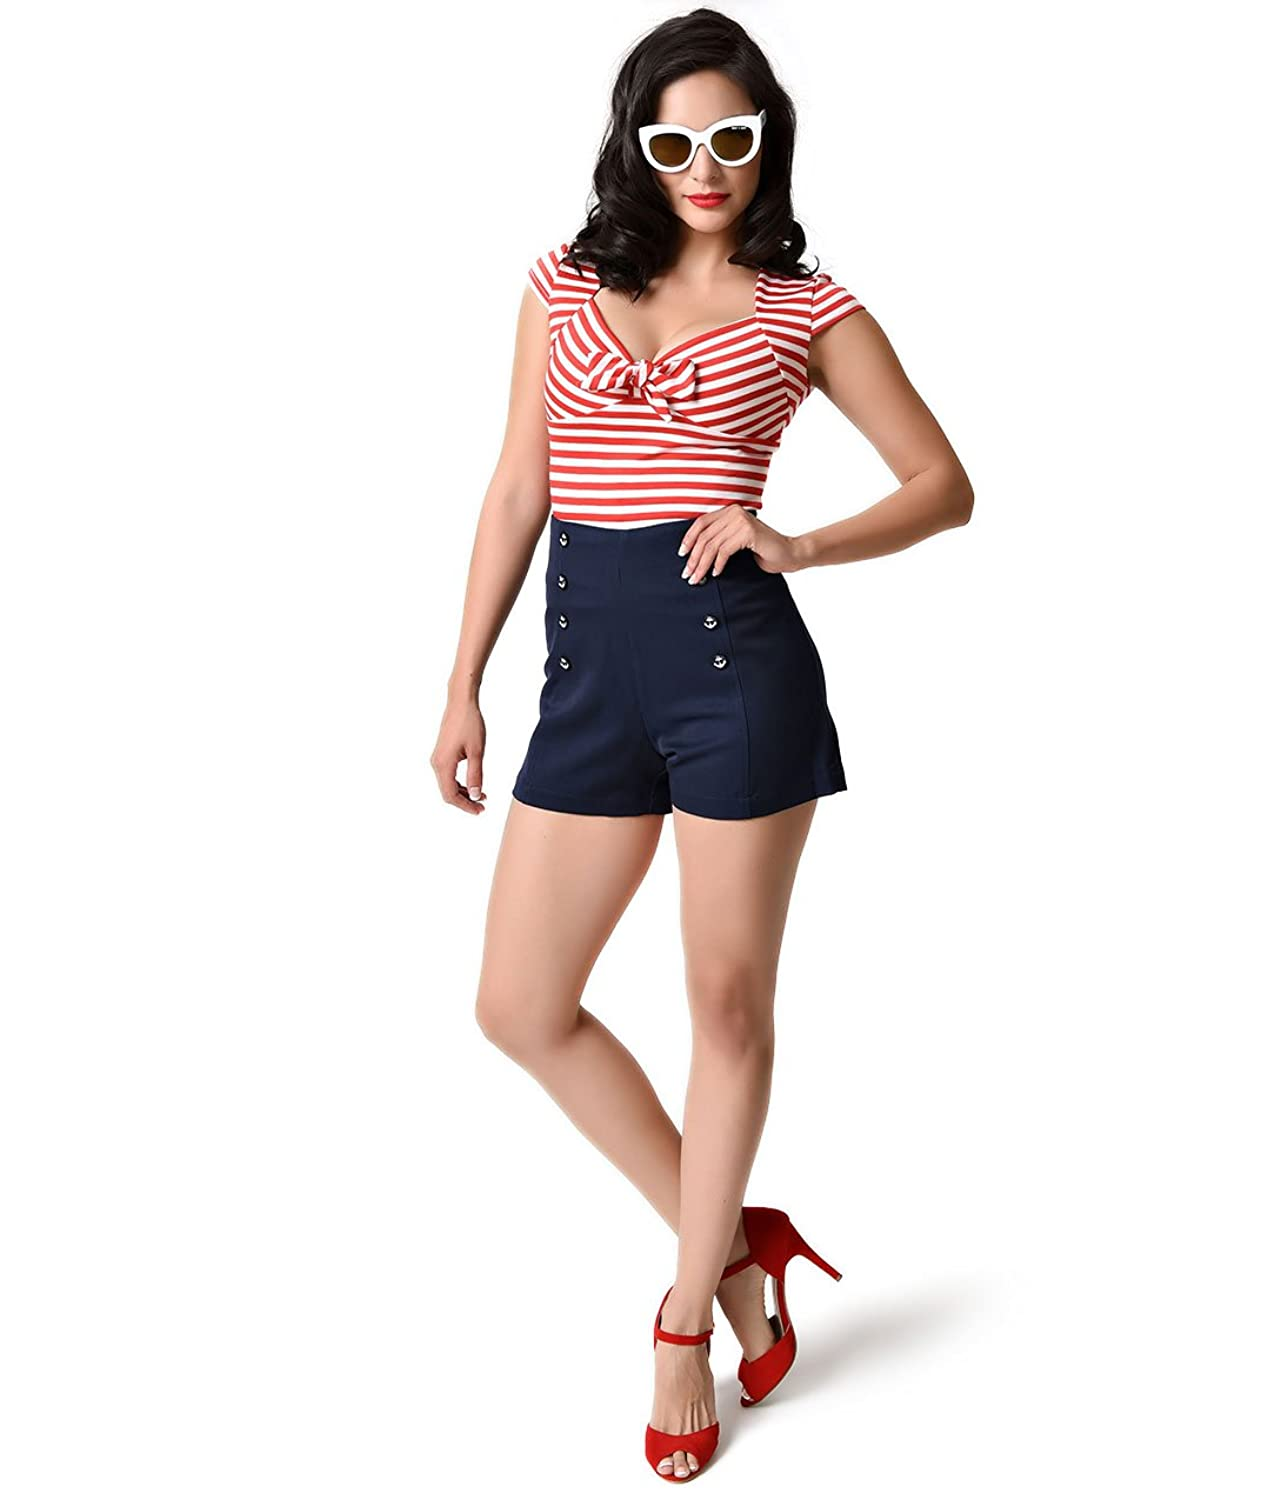 High Waisted Shorts- 1950s Vintage, Pinup, Rockabilly Banned Nautical Navy High Waist Stay Awhile Stretch Sailor Shorts $42.00 AT vintagedancer.com